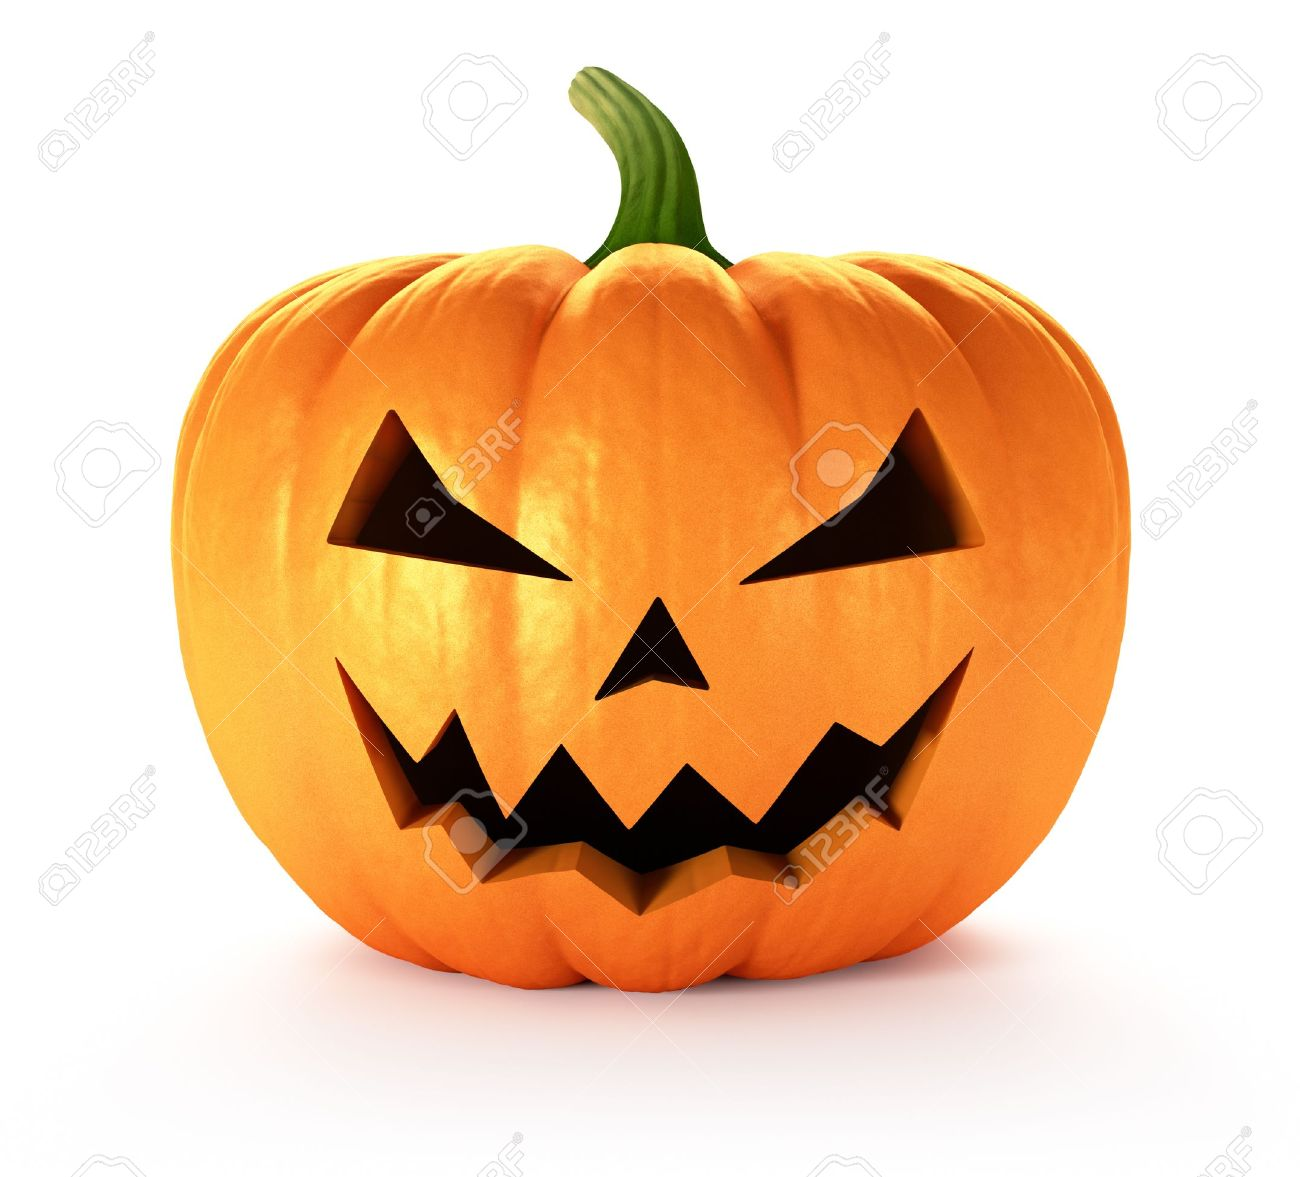 Scary Jack O Lantern Halloween Pumpkin 3d Render Stock Photo Picture And Royalty Free Image Image 15320522